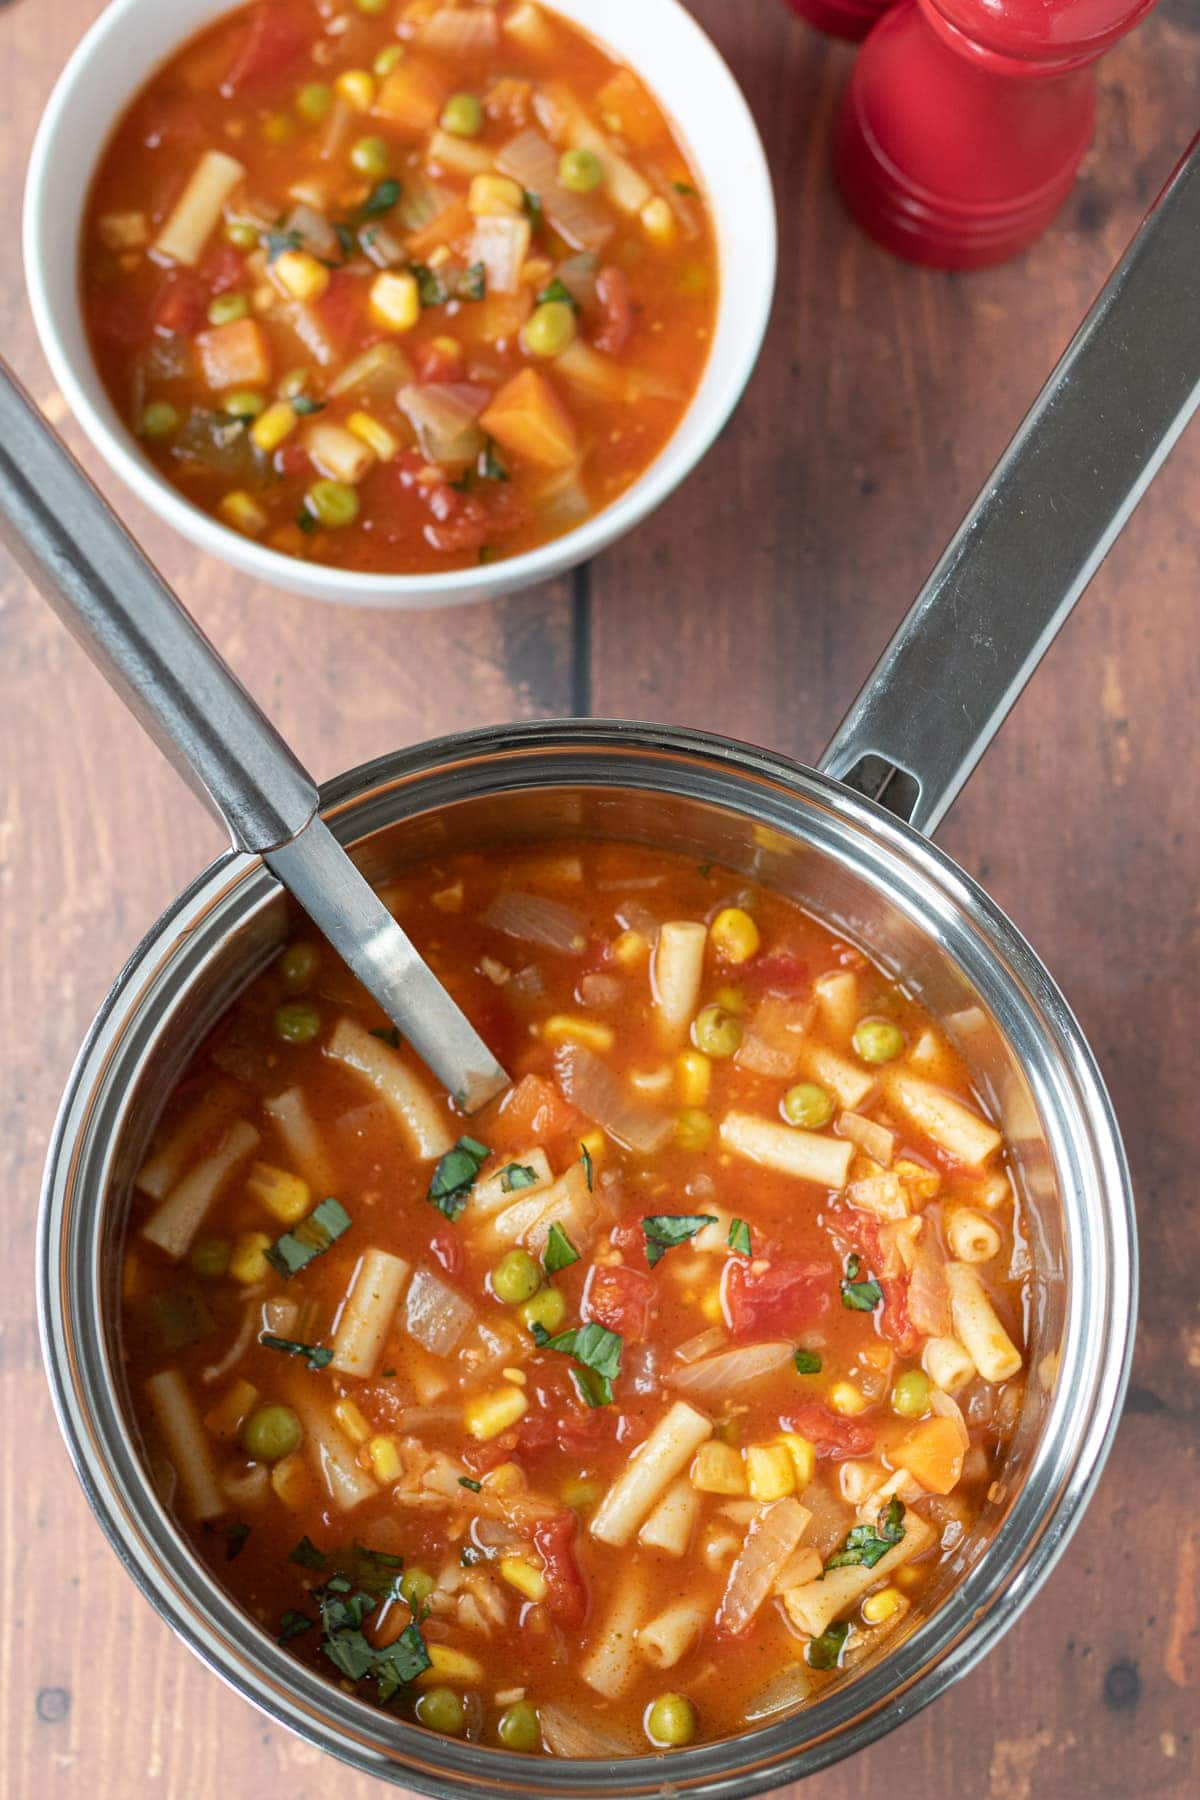 Birds eye view of a pot of pasta vegetable soup with a serving spoon in. A bowl of served soup at the top.